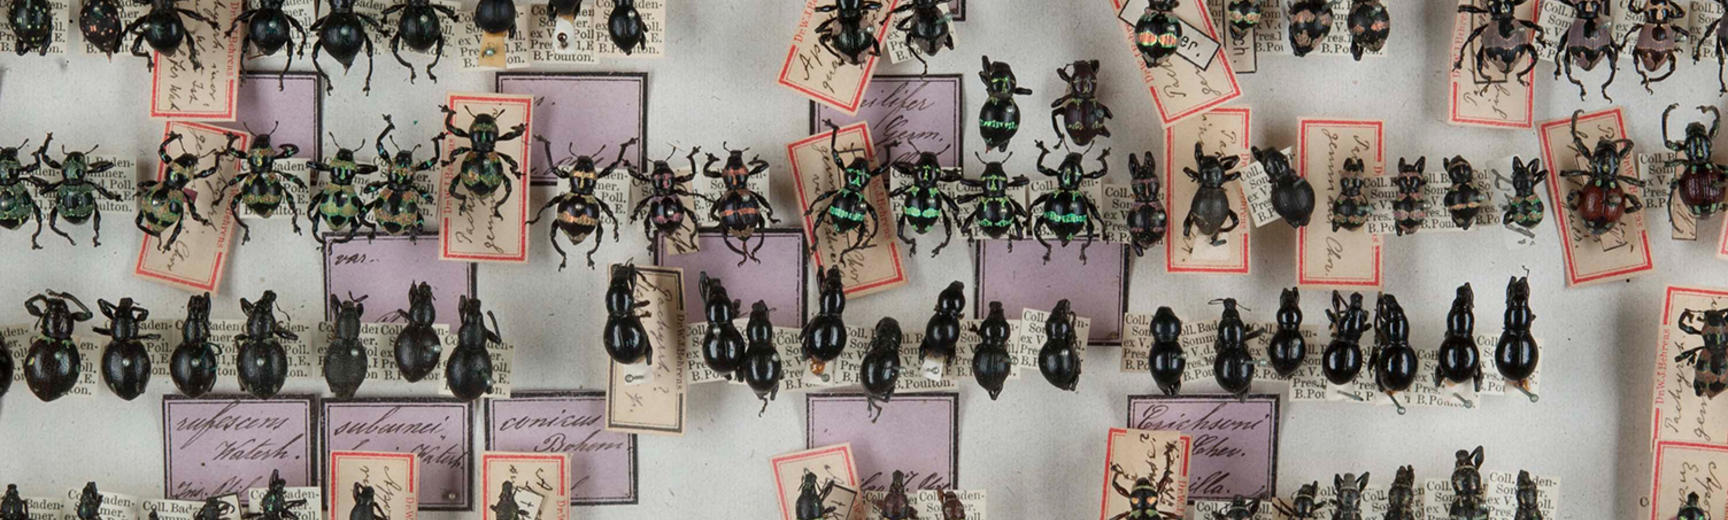 weevil specimens on display